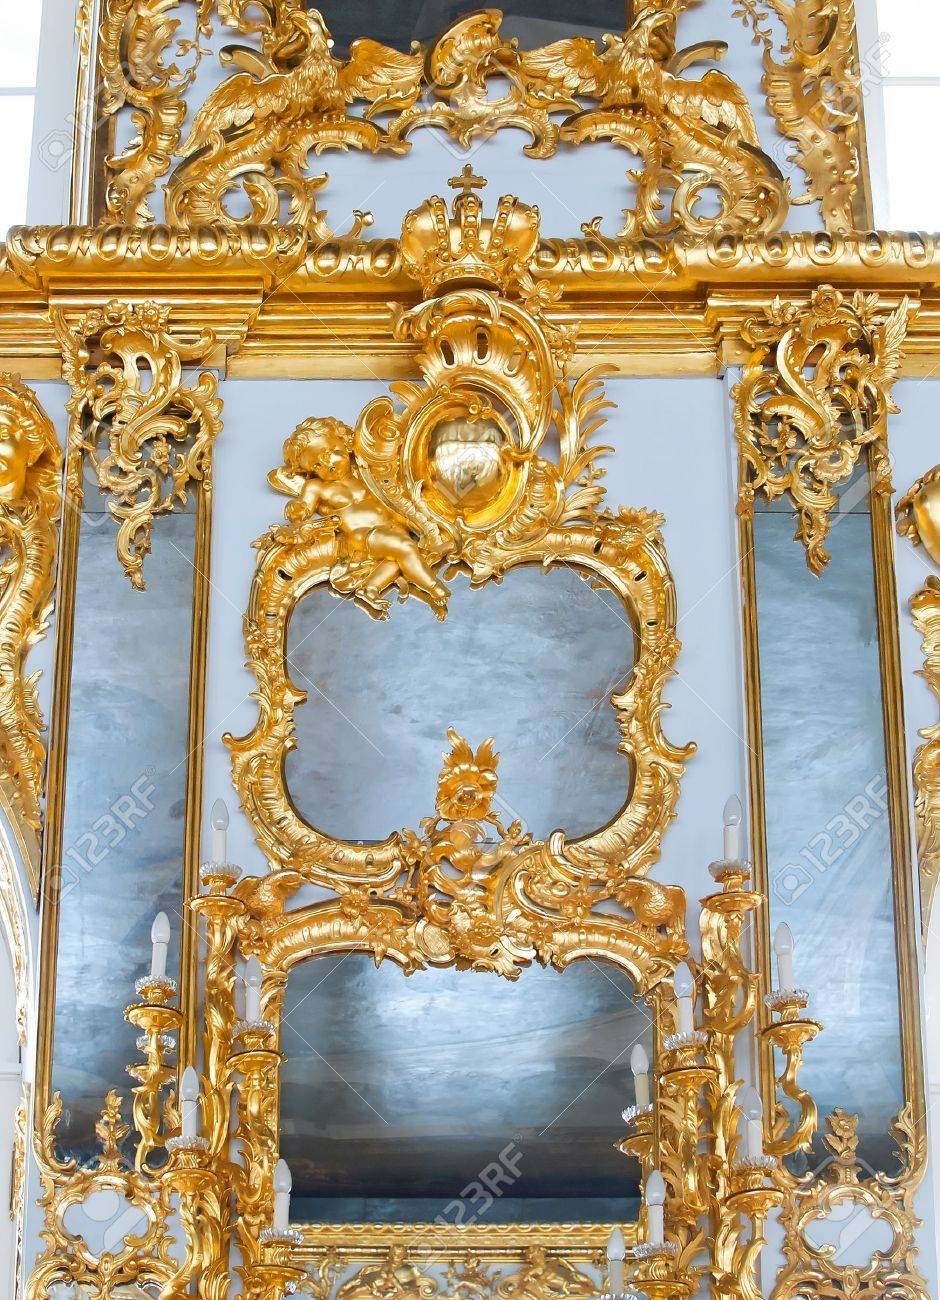 Mirrors In Frames With Golden Decorations On Wall Stock Photo with regard to Baroque Gold Mirrors (Image 13 of 15)